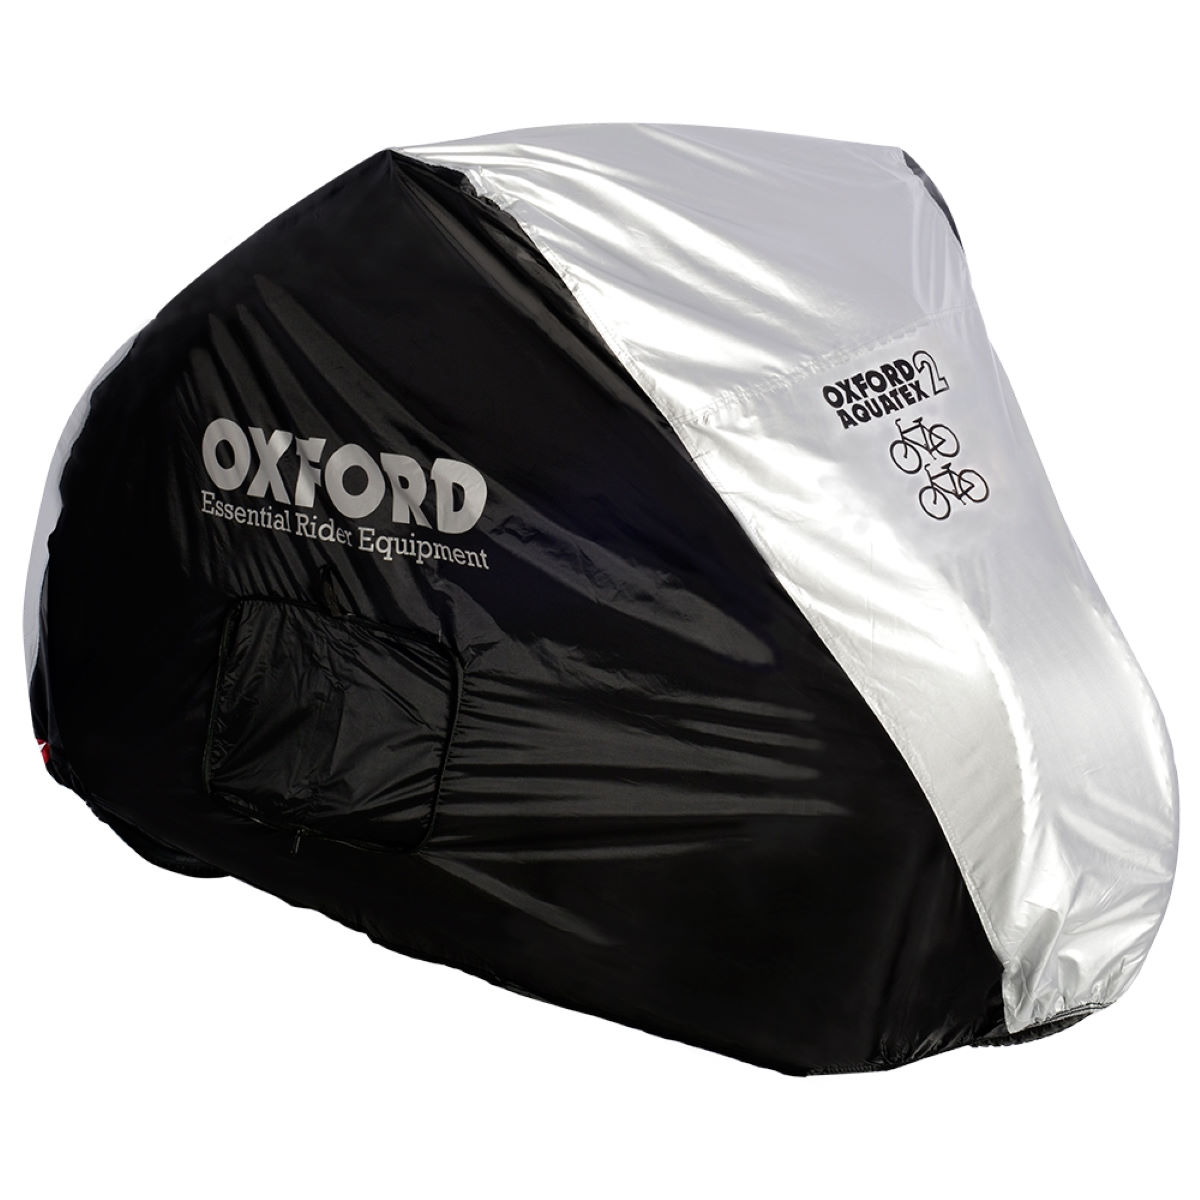 Oxford Oxford Aquatex Double Bike Cover   Bike Covers